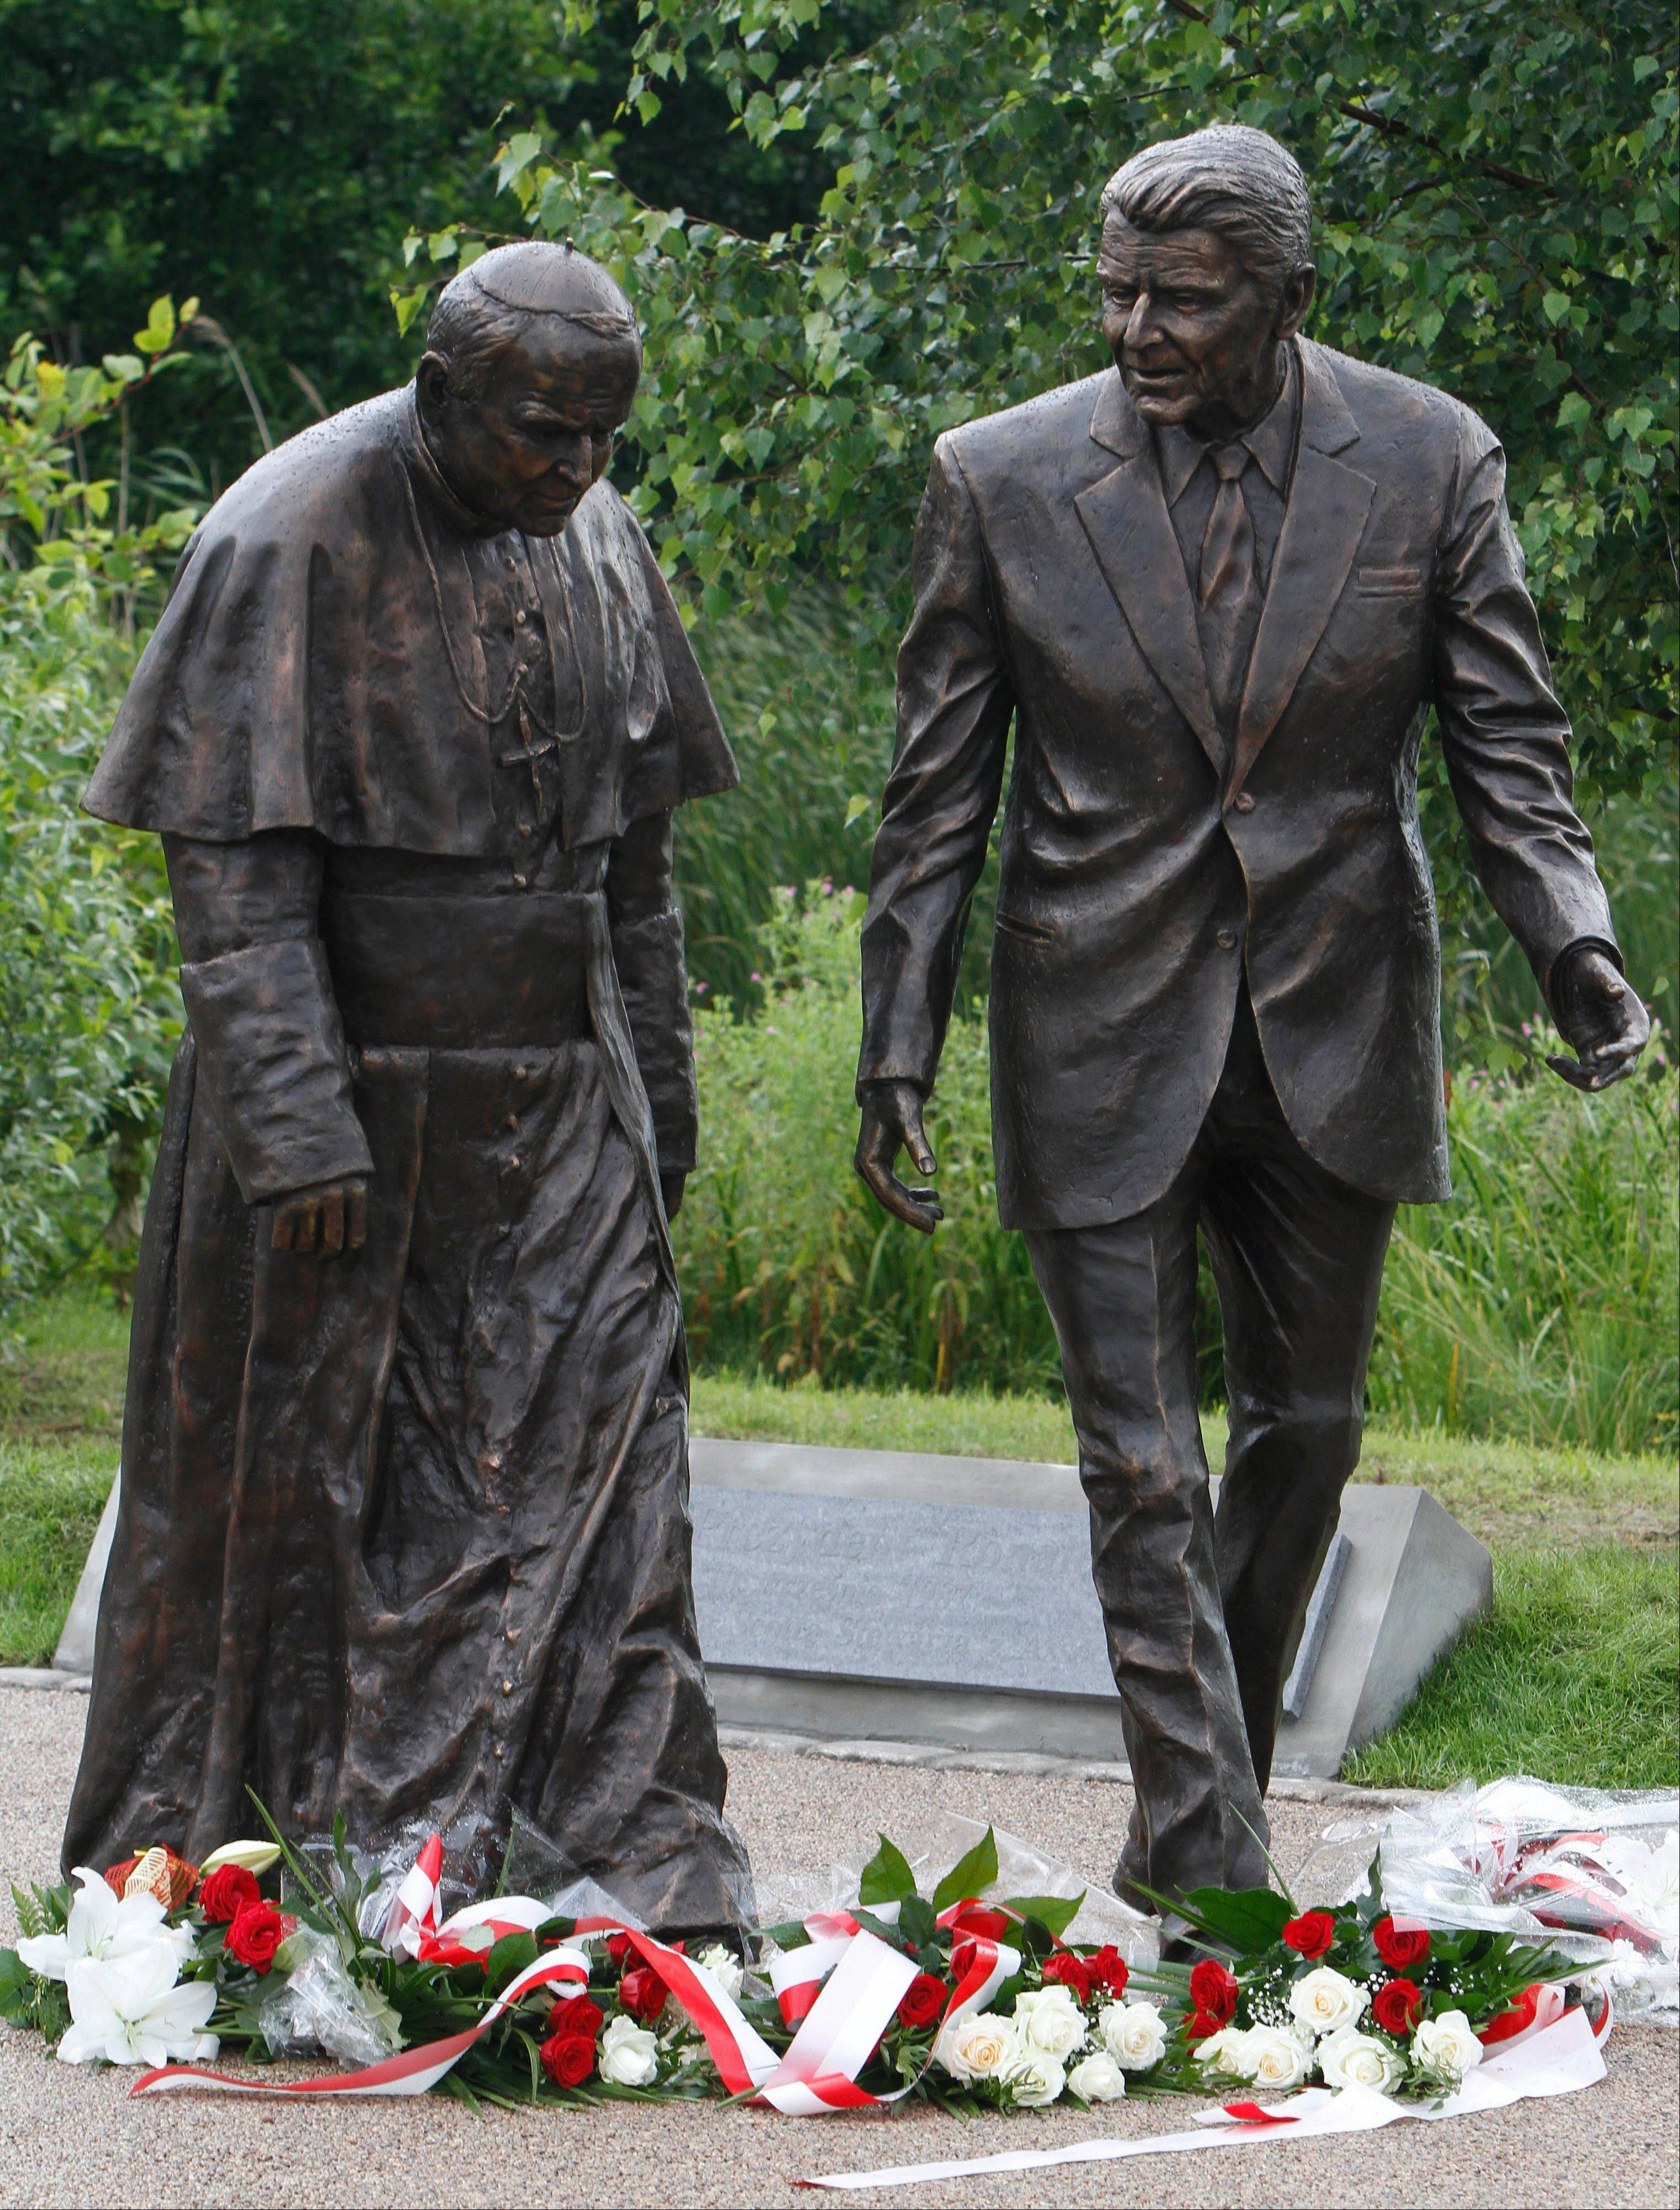 A new statue of President Ronald Reagan and Pope John Paul II that was unveiled Saturday in Gdansk, Poland. Both late leaders are highly reveared in Poland.